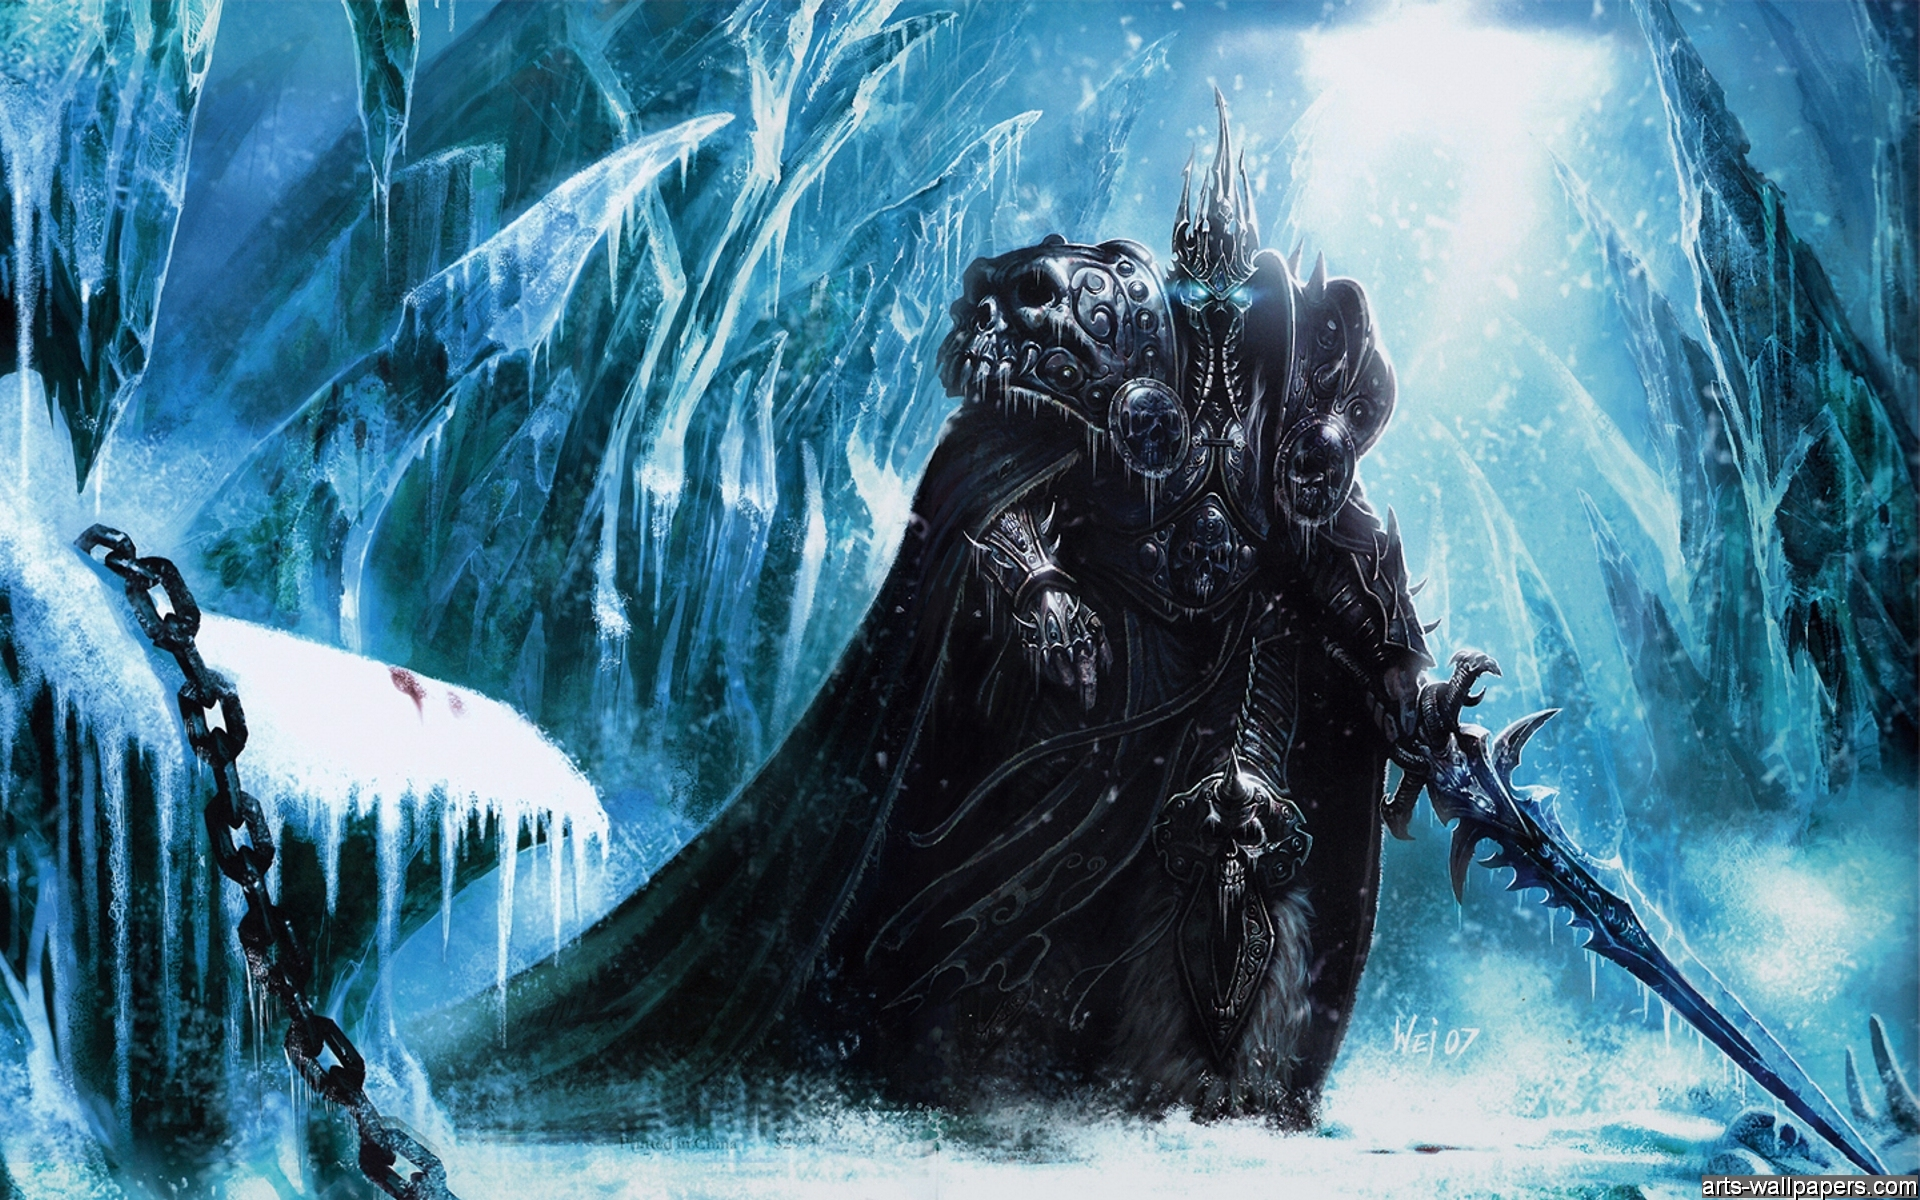 Blizzard Wallpapers Game Wallpapers WOW Starcraft 2 Diablo 3 1920x1200